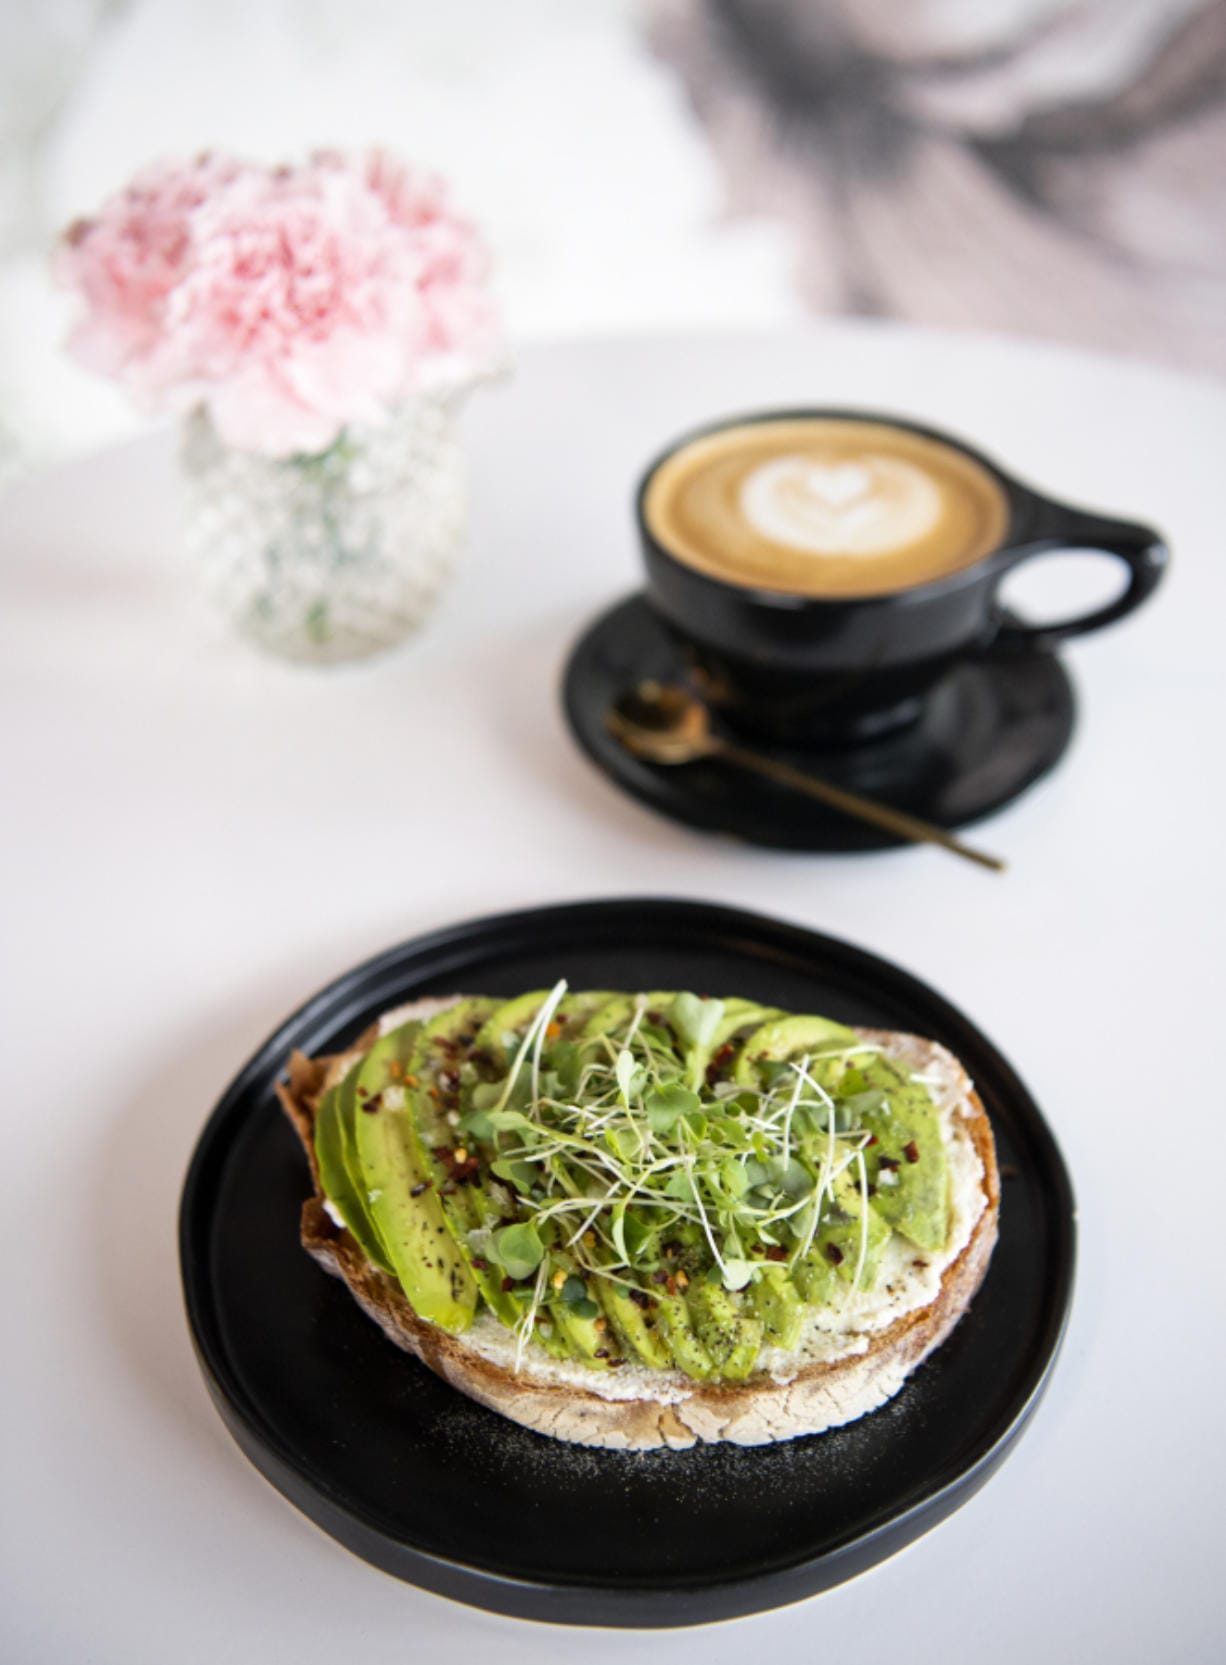 The avocado toast at Presso Coffee Kitchen. The rustic white bread is topped with ricotta cheese, avocado, olive oil, lemon juice, salt, pepper, chili flakes and micro greens. Alisha Jucevic/The Columbian